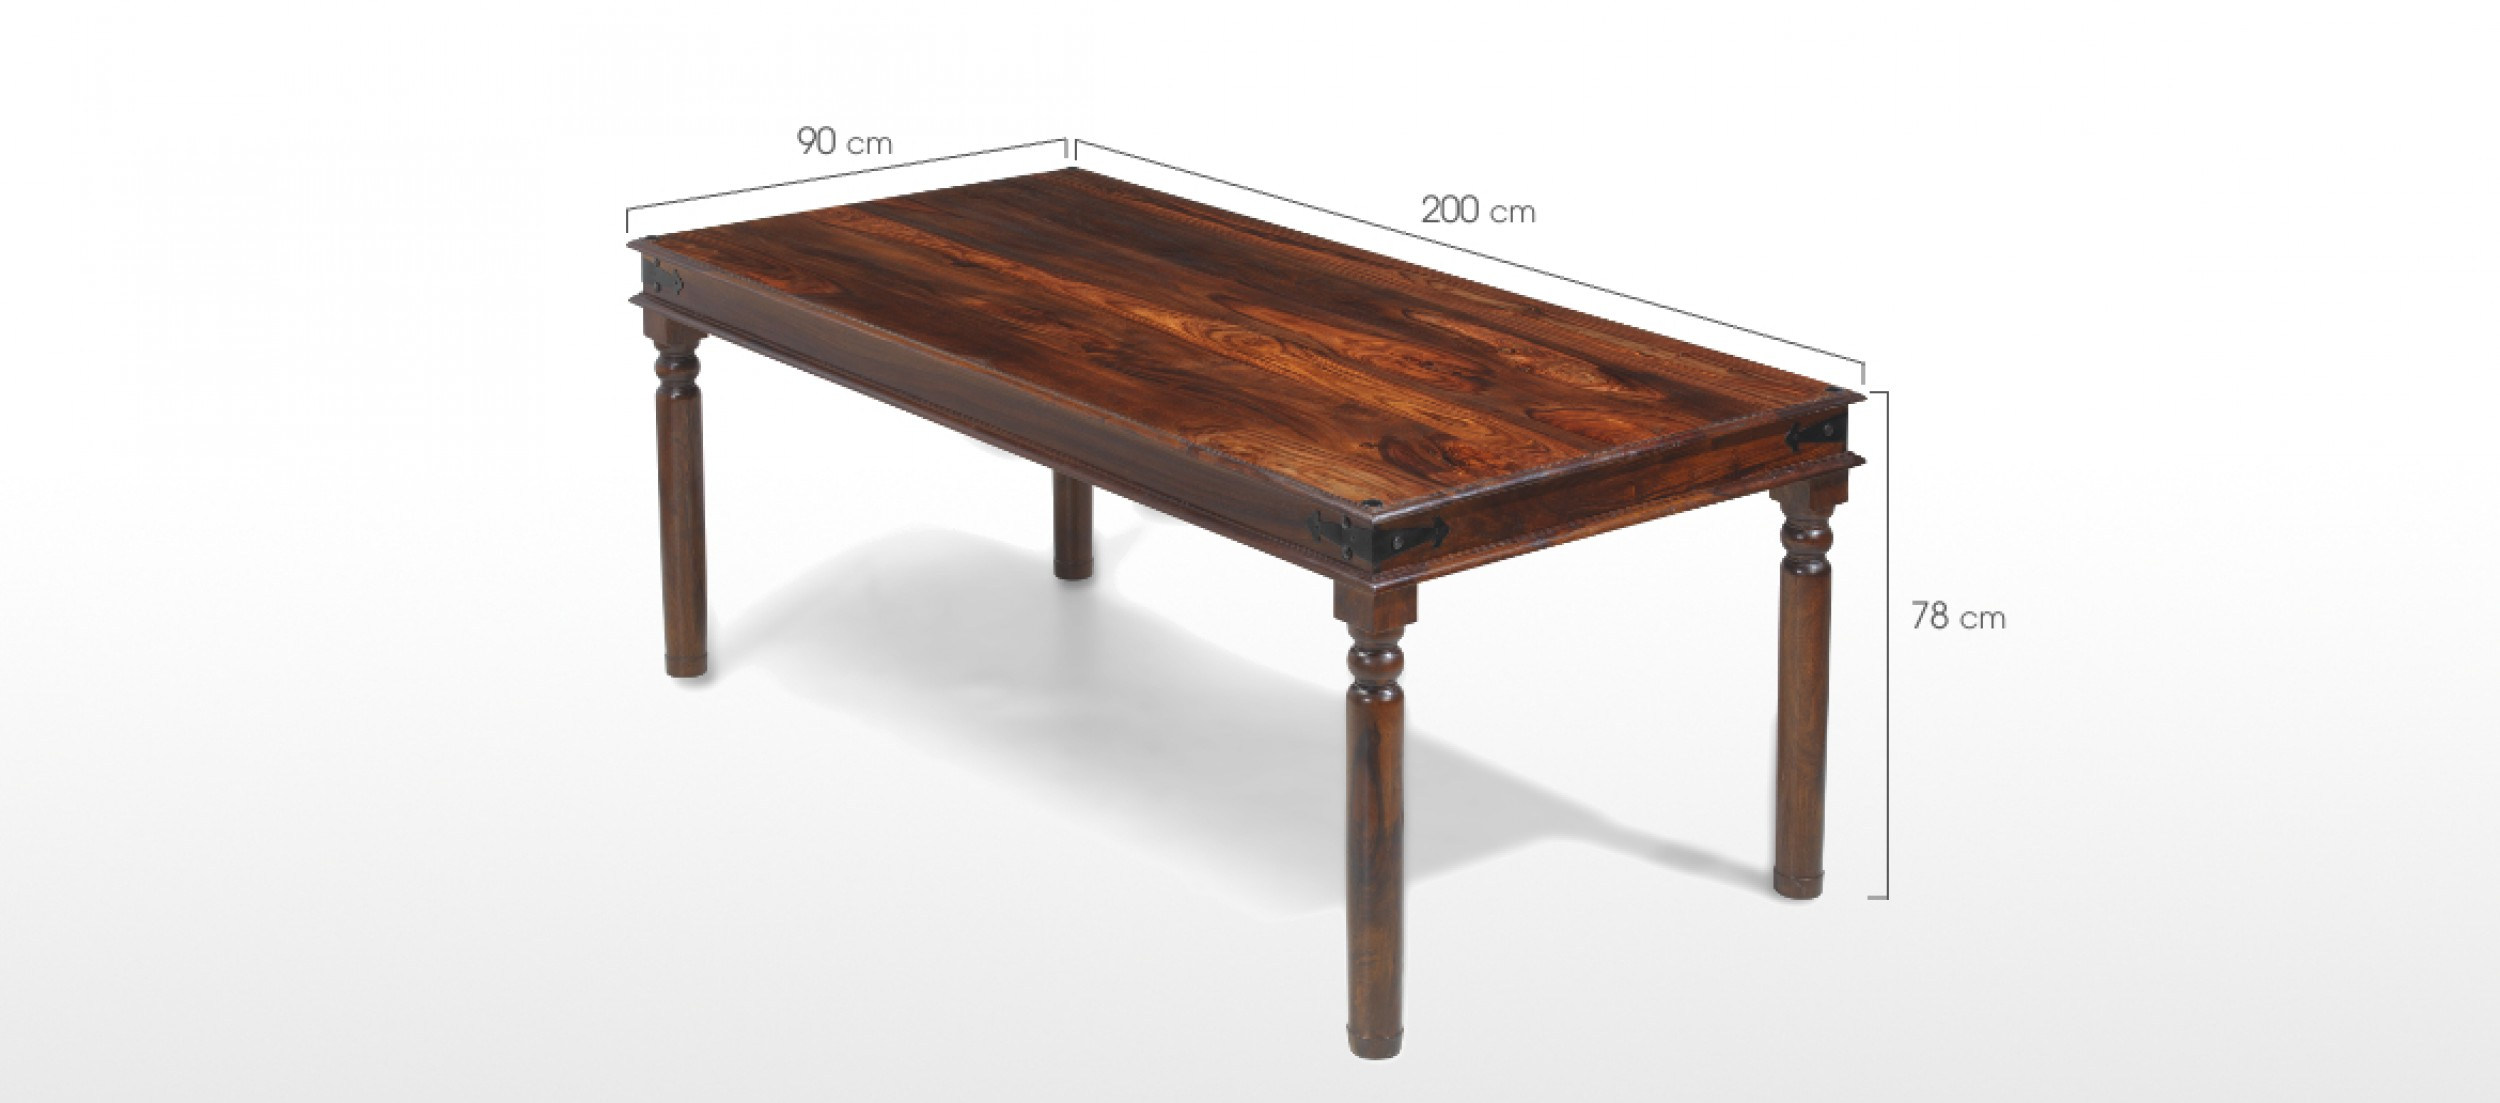 Jali Sheesham 200 cm Thakat Dining Table Quercus Living : jali sheesham thackat dining table sh 15 dimensions1 from www.quercusliving.co.uk size 2500 x 1103 jpeg 172kB